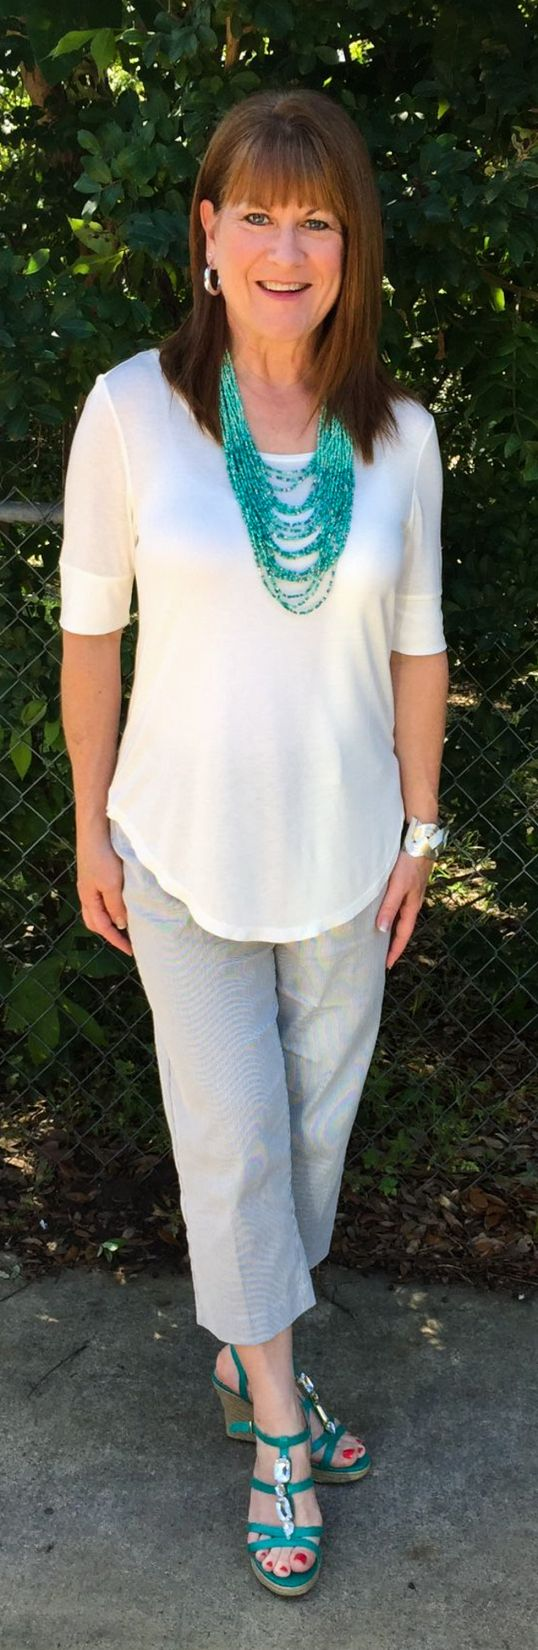 I like this top and I like it with the necklace, too.  I don't have much of a waist anymore and this will be great for me.